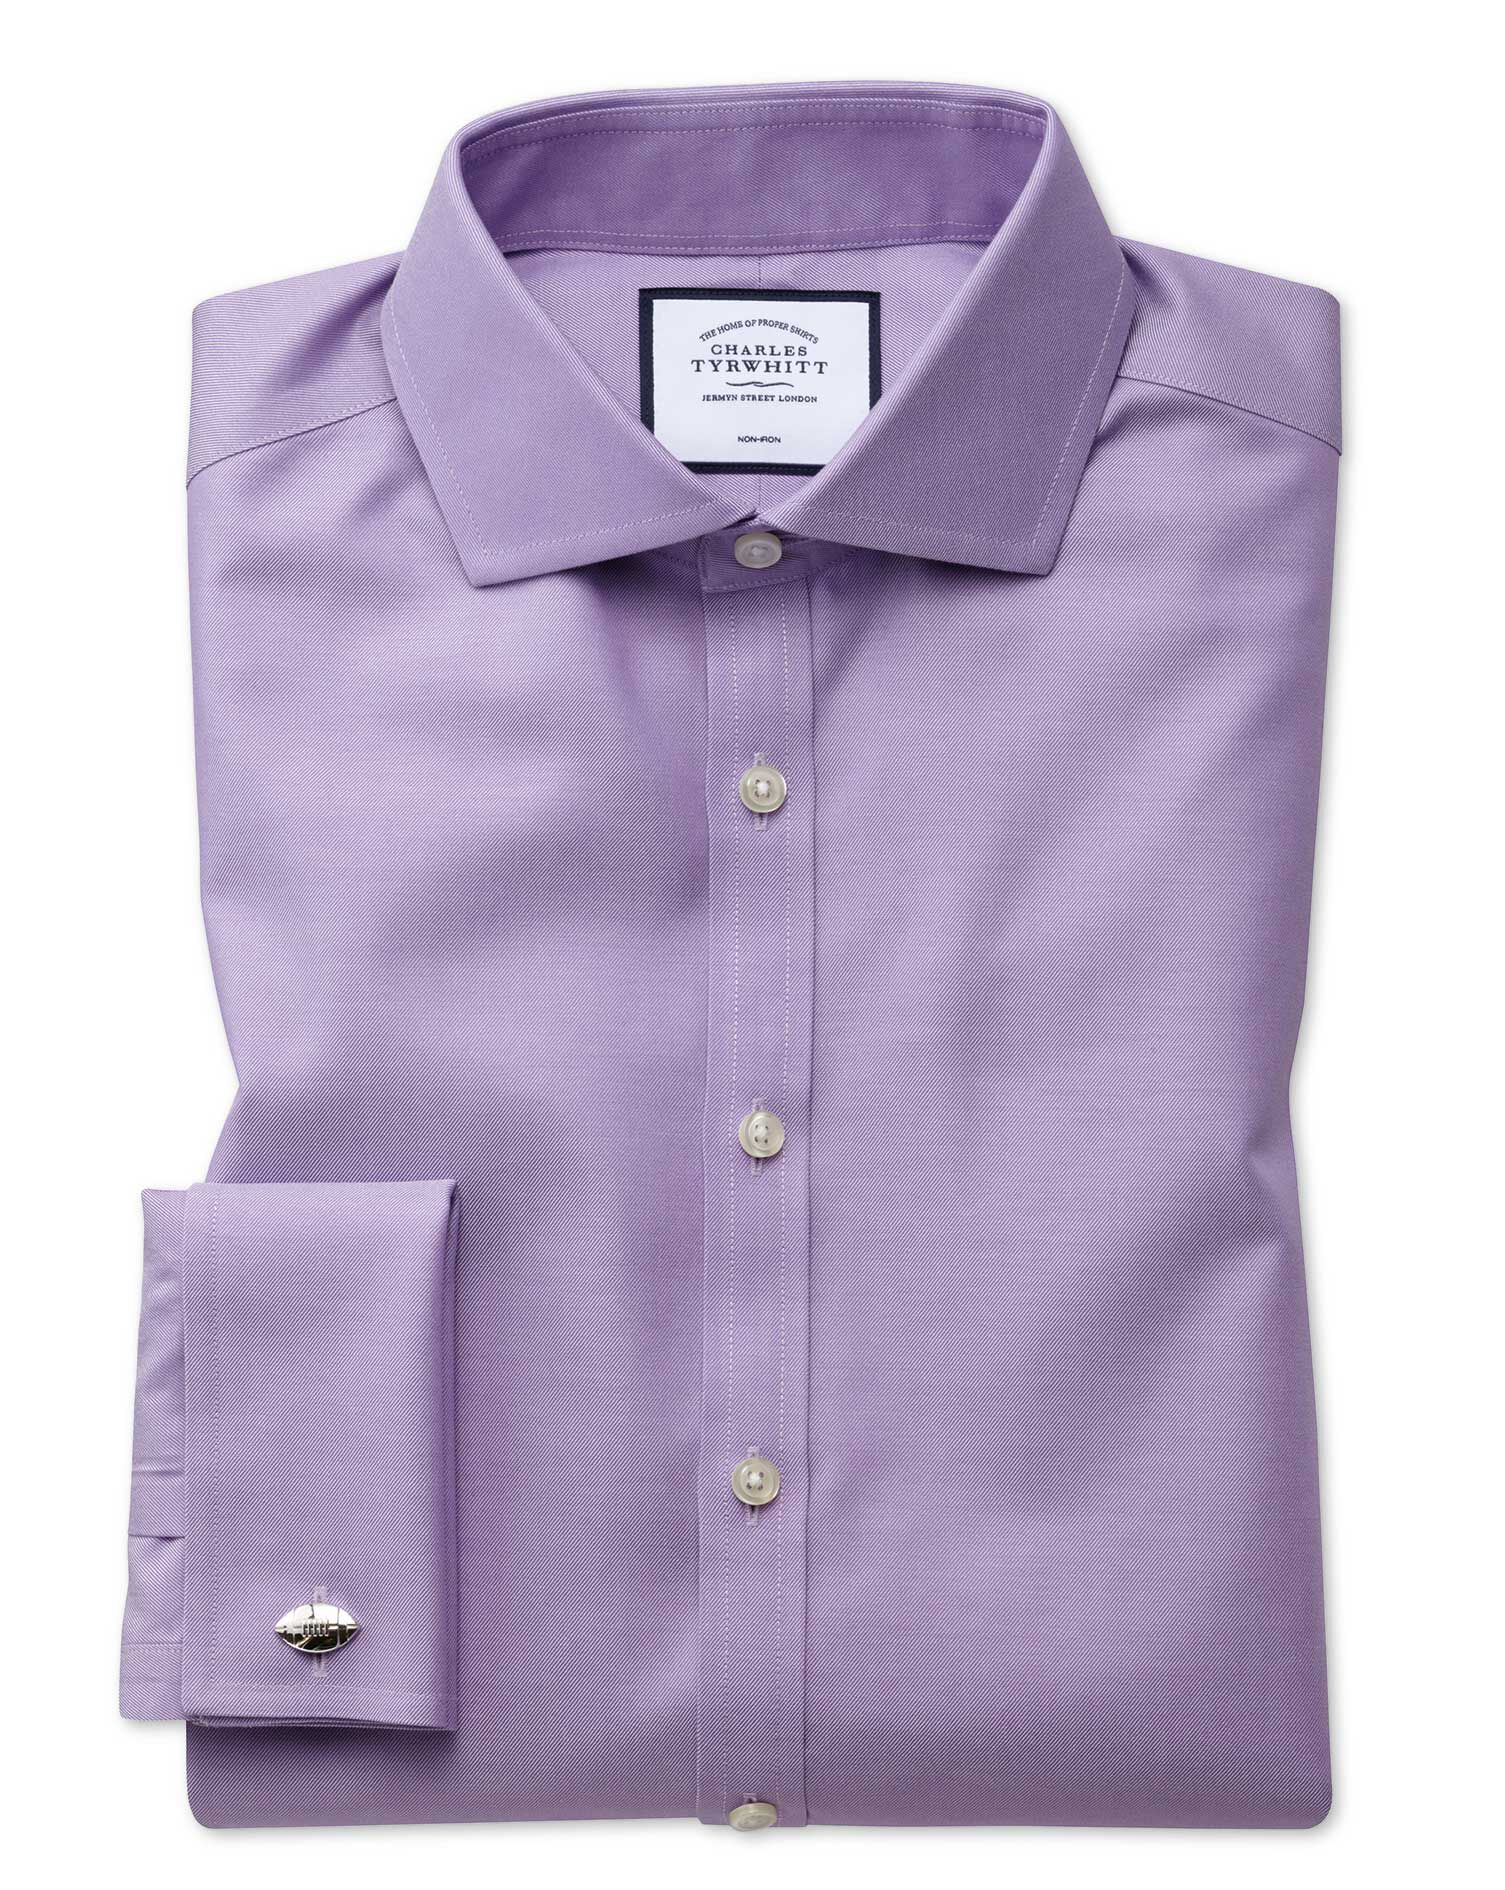 Super Slim Fit Lilac Non-Iron Twill Cotton Formal Shirt Double Cuff Size 14/33 by Charles Tyrwhitt